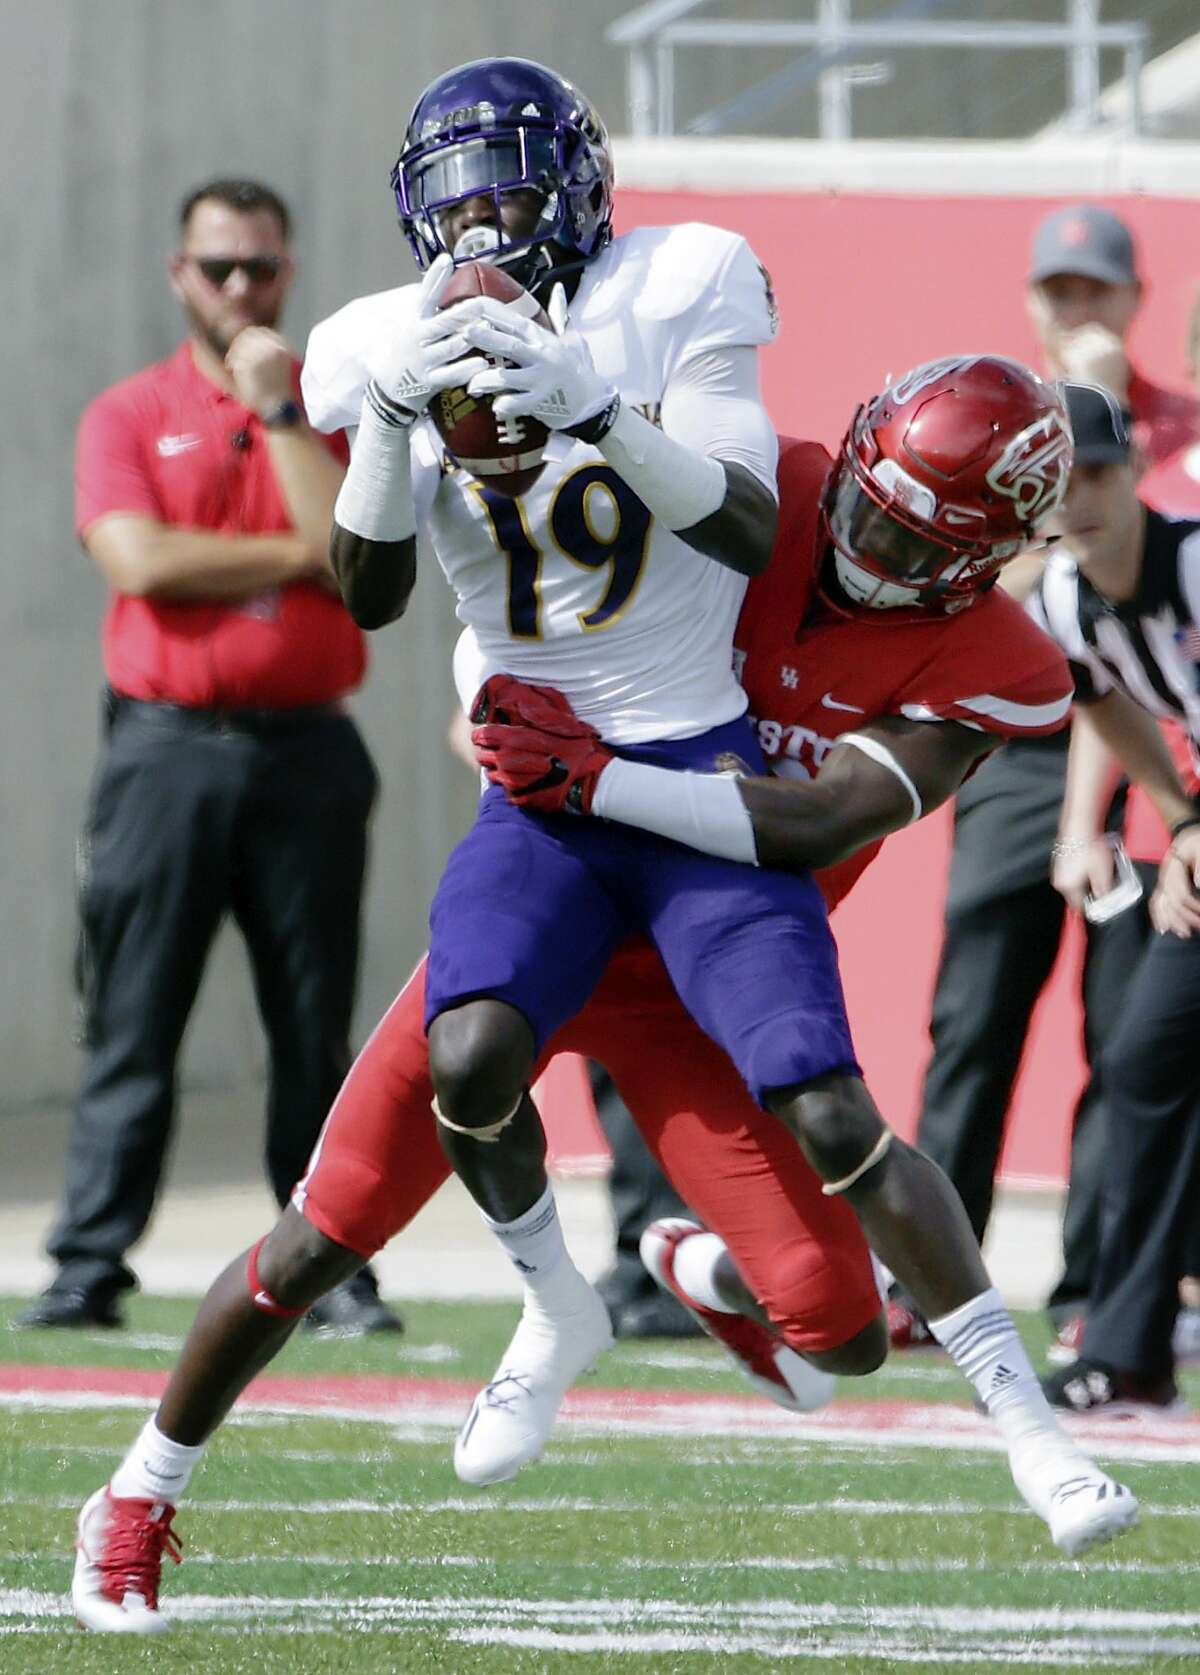 East Carolina wide receiver Mydreon Vines (19) is tackled on his reception by Houston cornerback Ka'Darian Smith (16) during the second half of an NCAA college football game Saturday, Nov. 4, 2017, in Houston. (Michael Wyke/Houston Chronicle via AP)